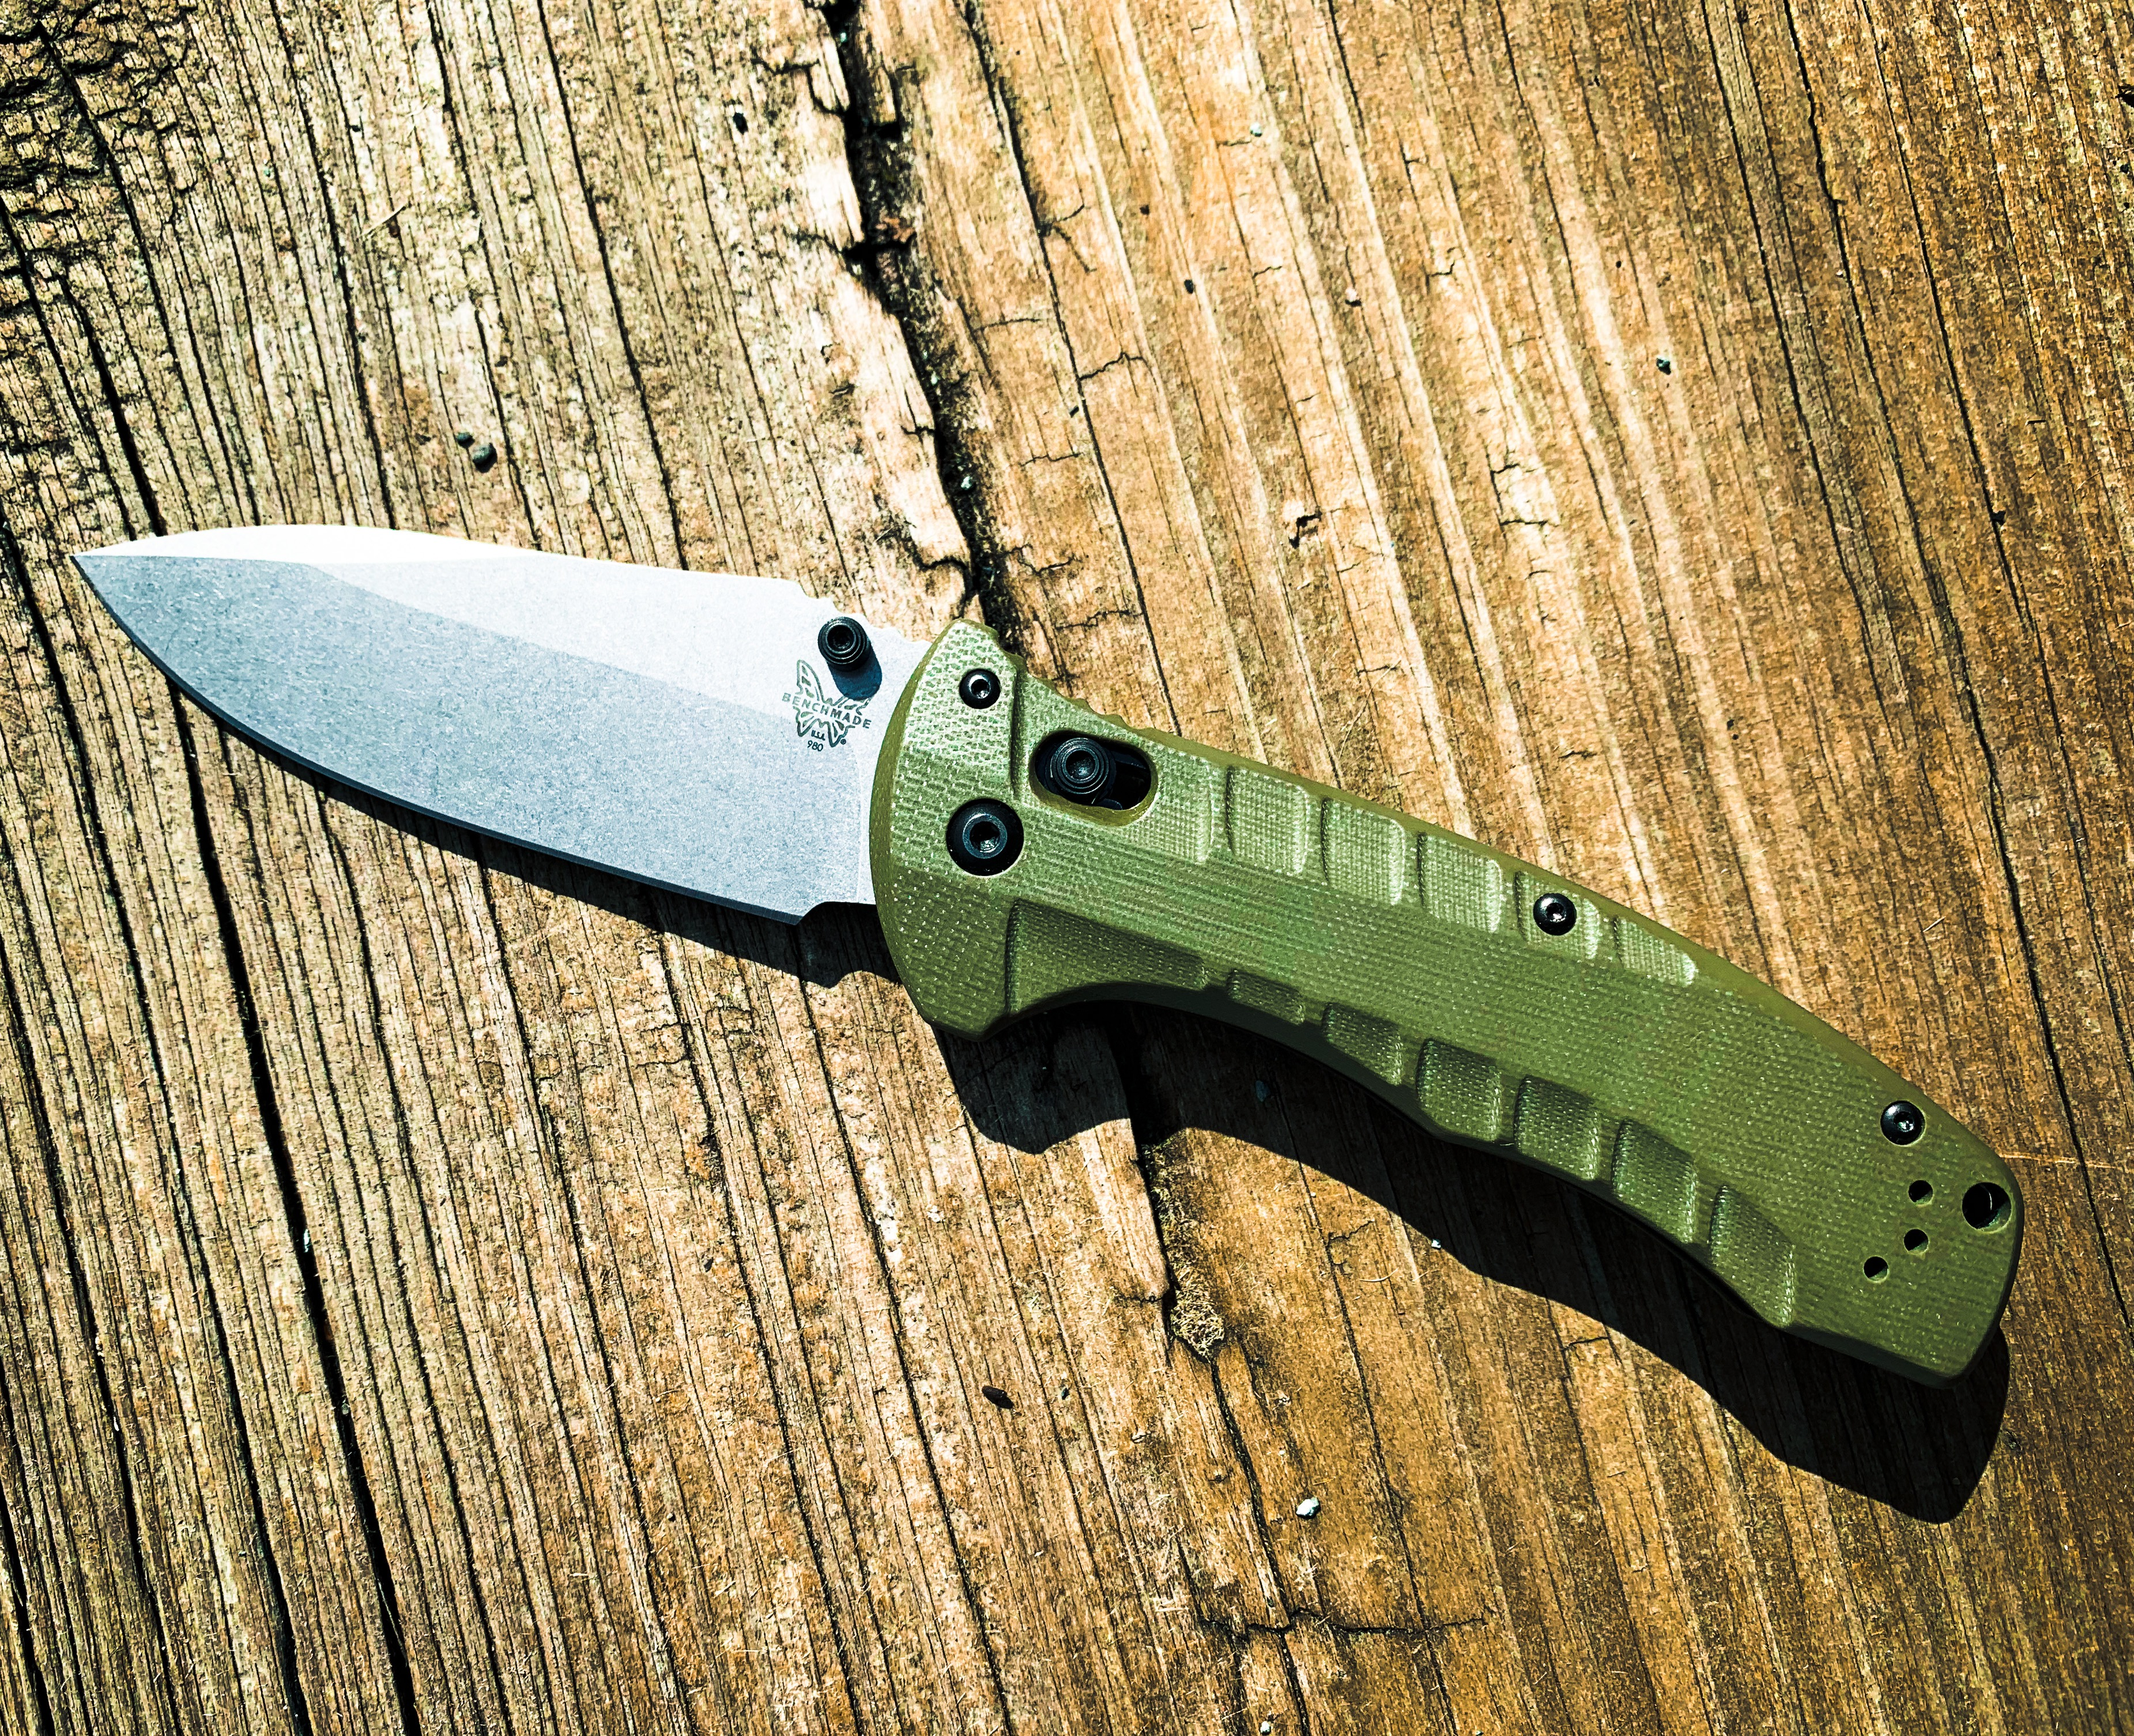 Benchmade 980 Turret: A new option in tactical folding